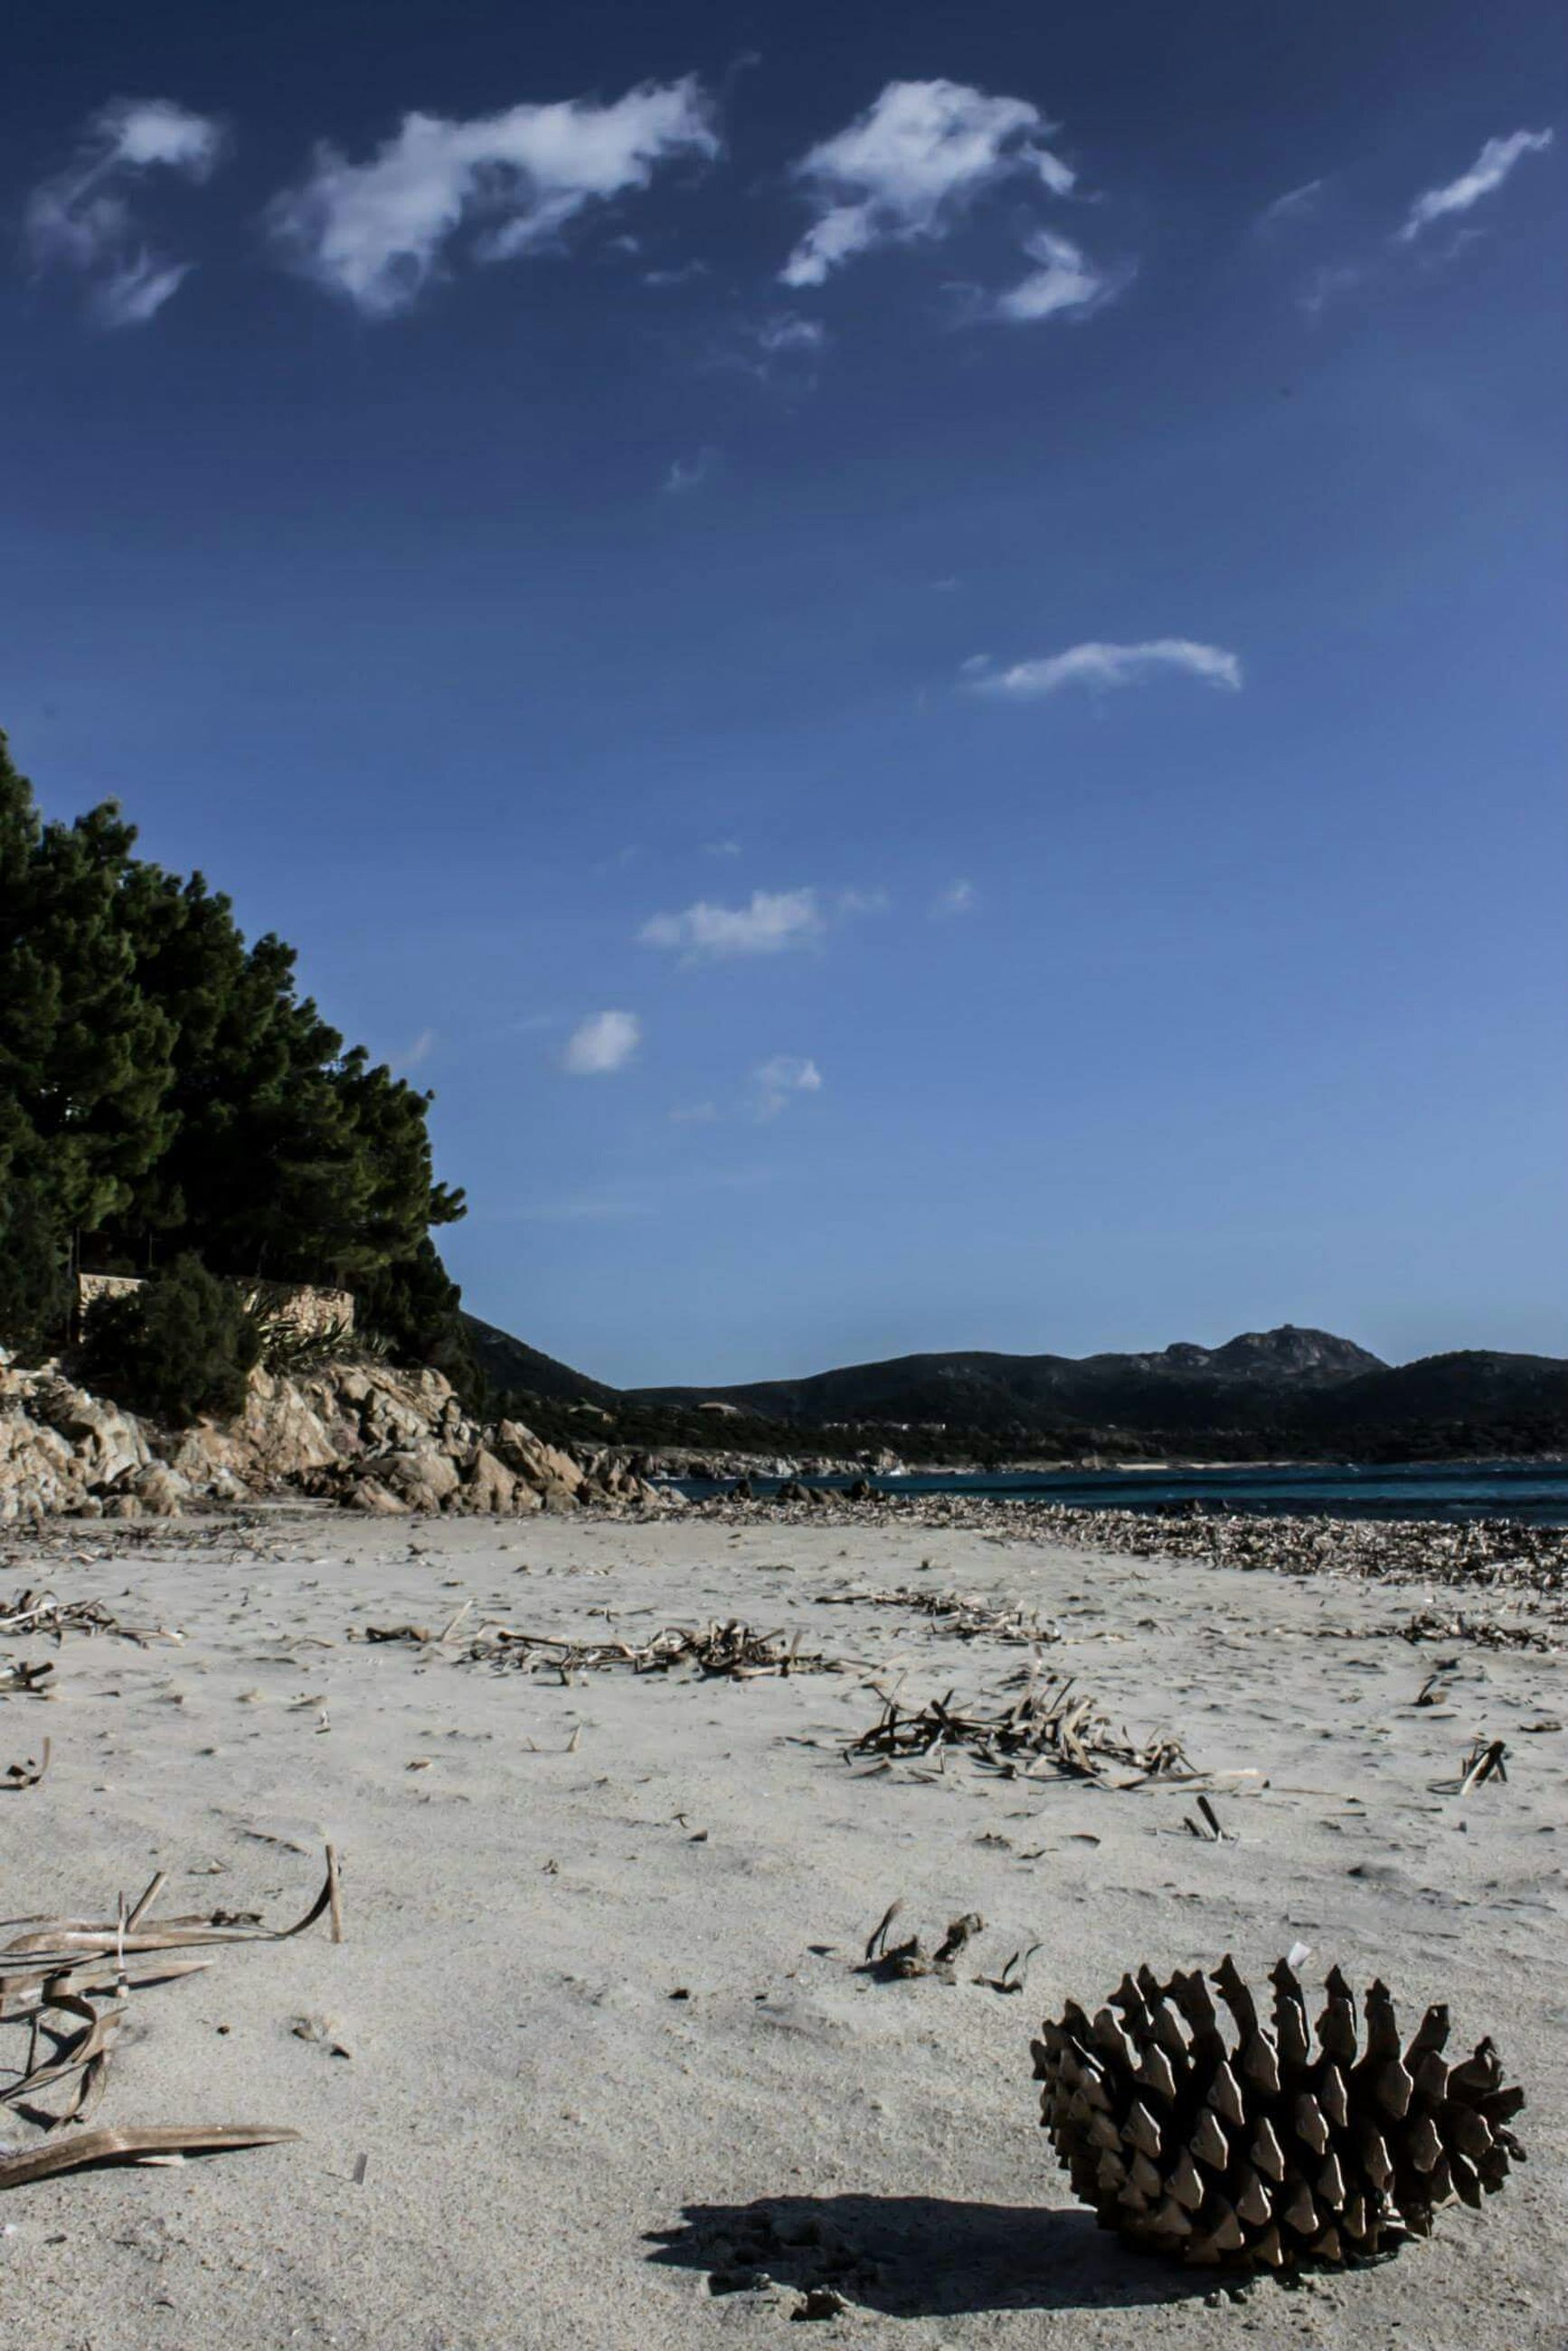 beach, water, tranquility, tranquil scene, sky, sand, nature, scenics, beauty in nature, shore, rock - object, tree, sea, day, outdoors, stone - object, sunlight, no people, non-urban scene, idyllic